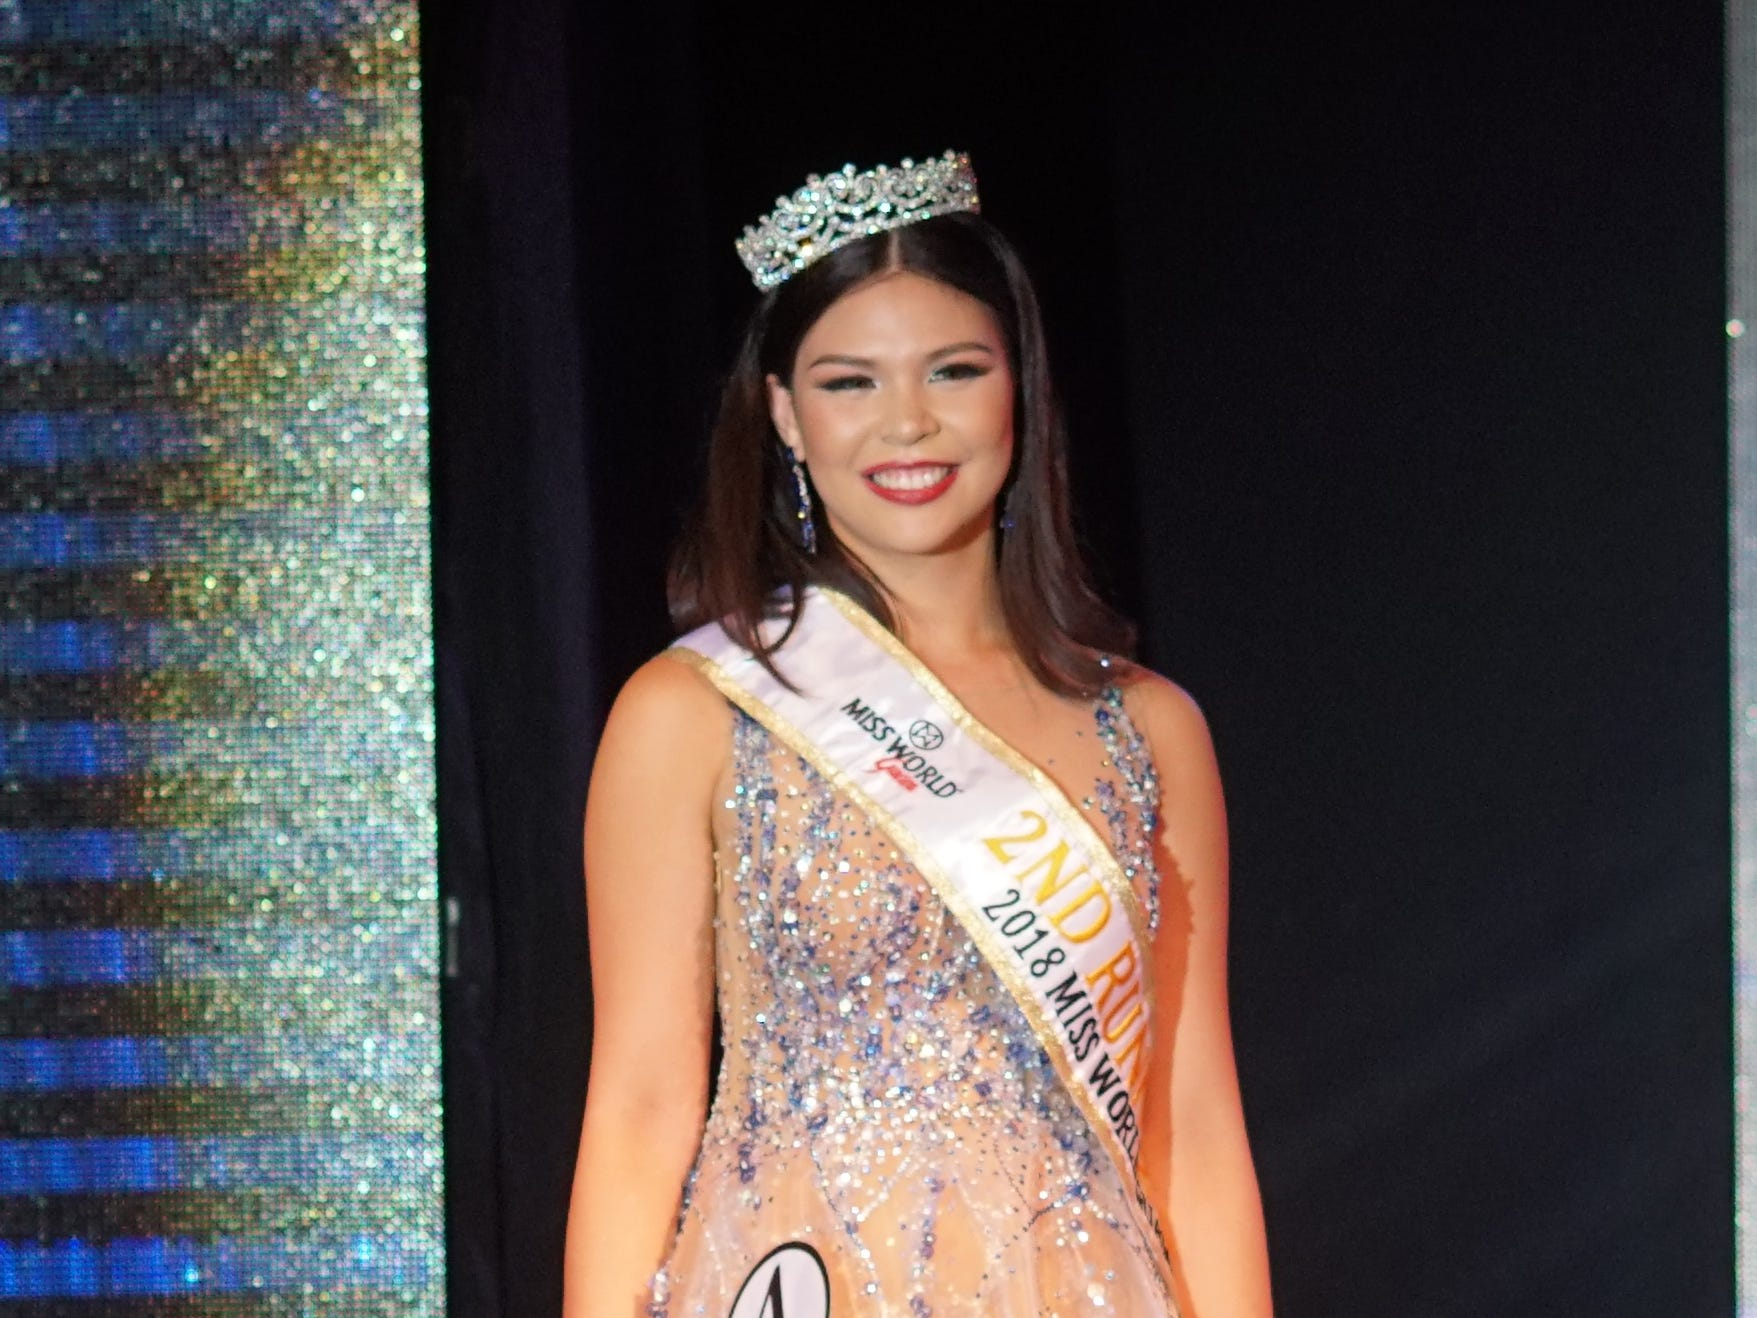 2nd Runner up in the 2018 Miss World Guam pageant held at Sheraton Laguna Guam Resort is Contestant #4 Mariana Quintanilla Kier, 18, of Sinajana.